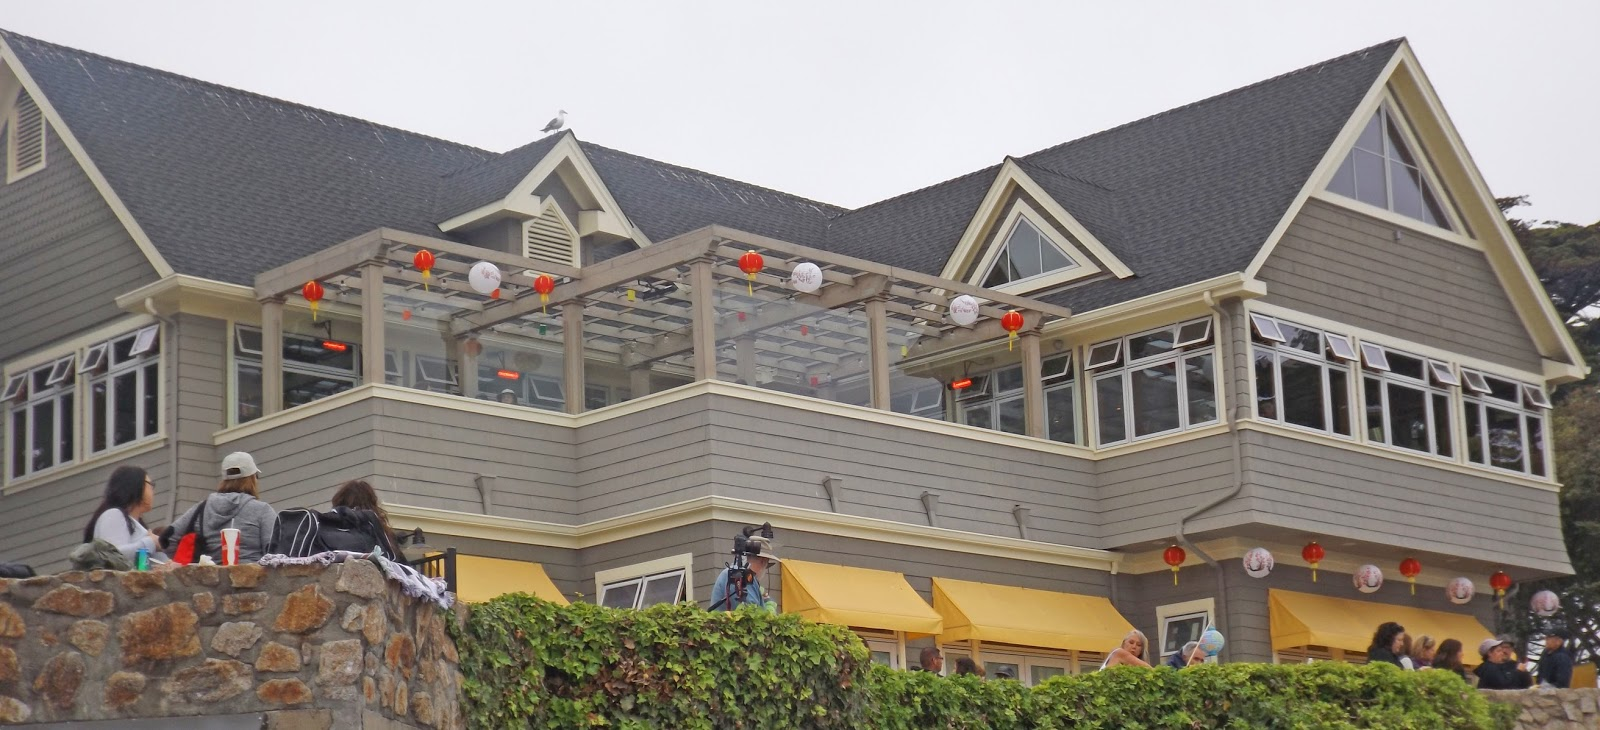 Feast Of Lanterns Pageant Pacific Grove Adventures A Home Beach House Restaurant At Point